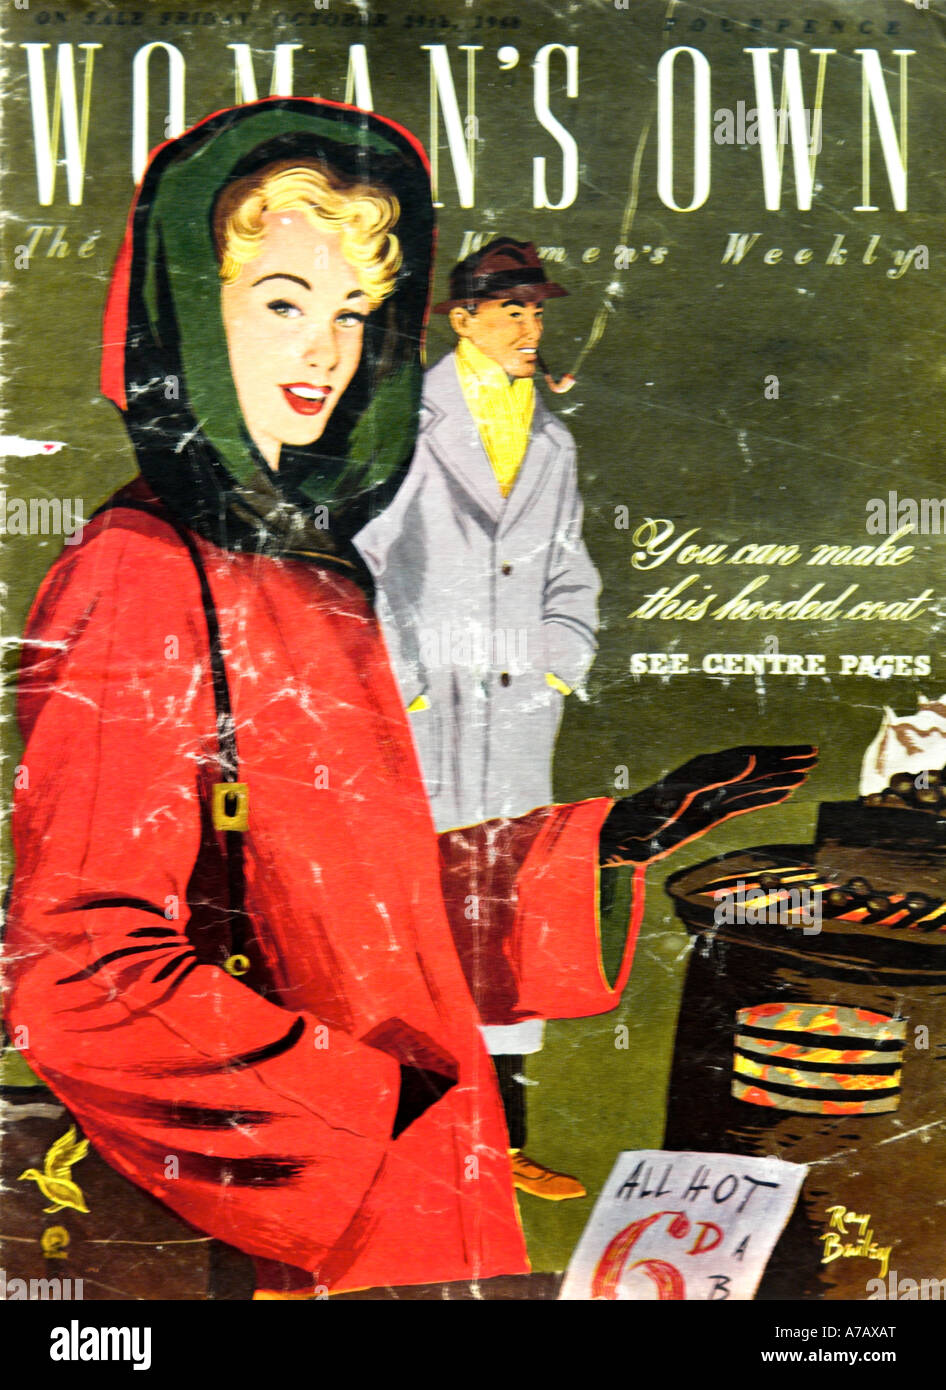 Woman's Own Magazine October 1960 EDITORIAL USE ONLY - Stock Image